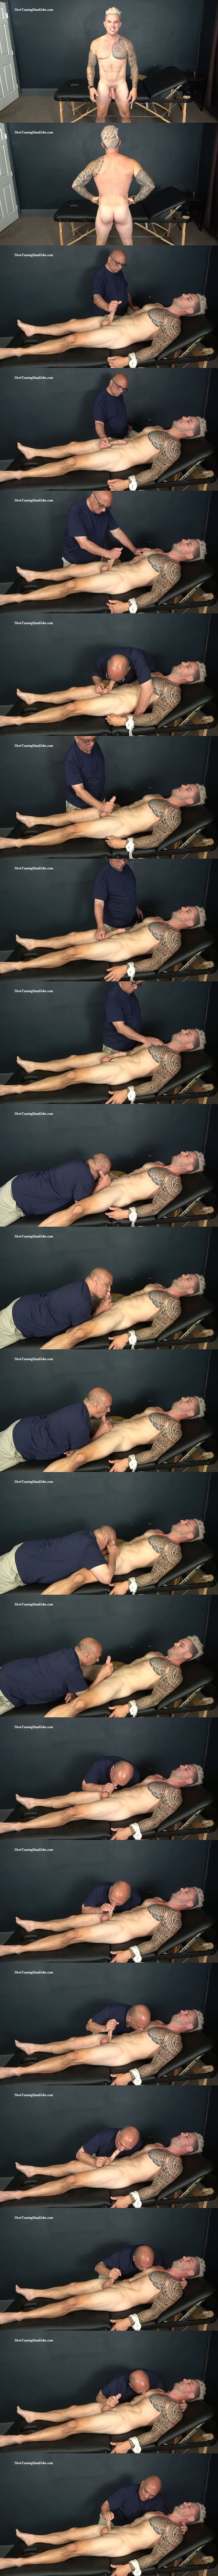 Muscular male stripper Ronnie (aka Ronnie J) gets tied up naked, slowly sucked and edged by master Rich before Rich milks the jizz out of Ronnie's hard boner in Muscular Stripper Hand Job at Slowteasinghandjobs 01